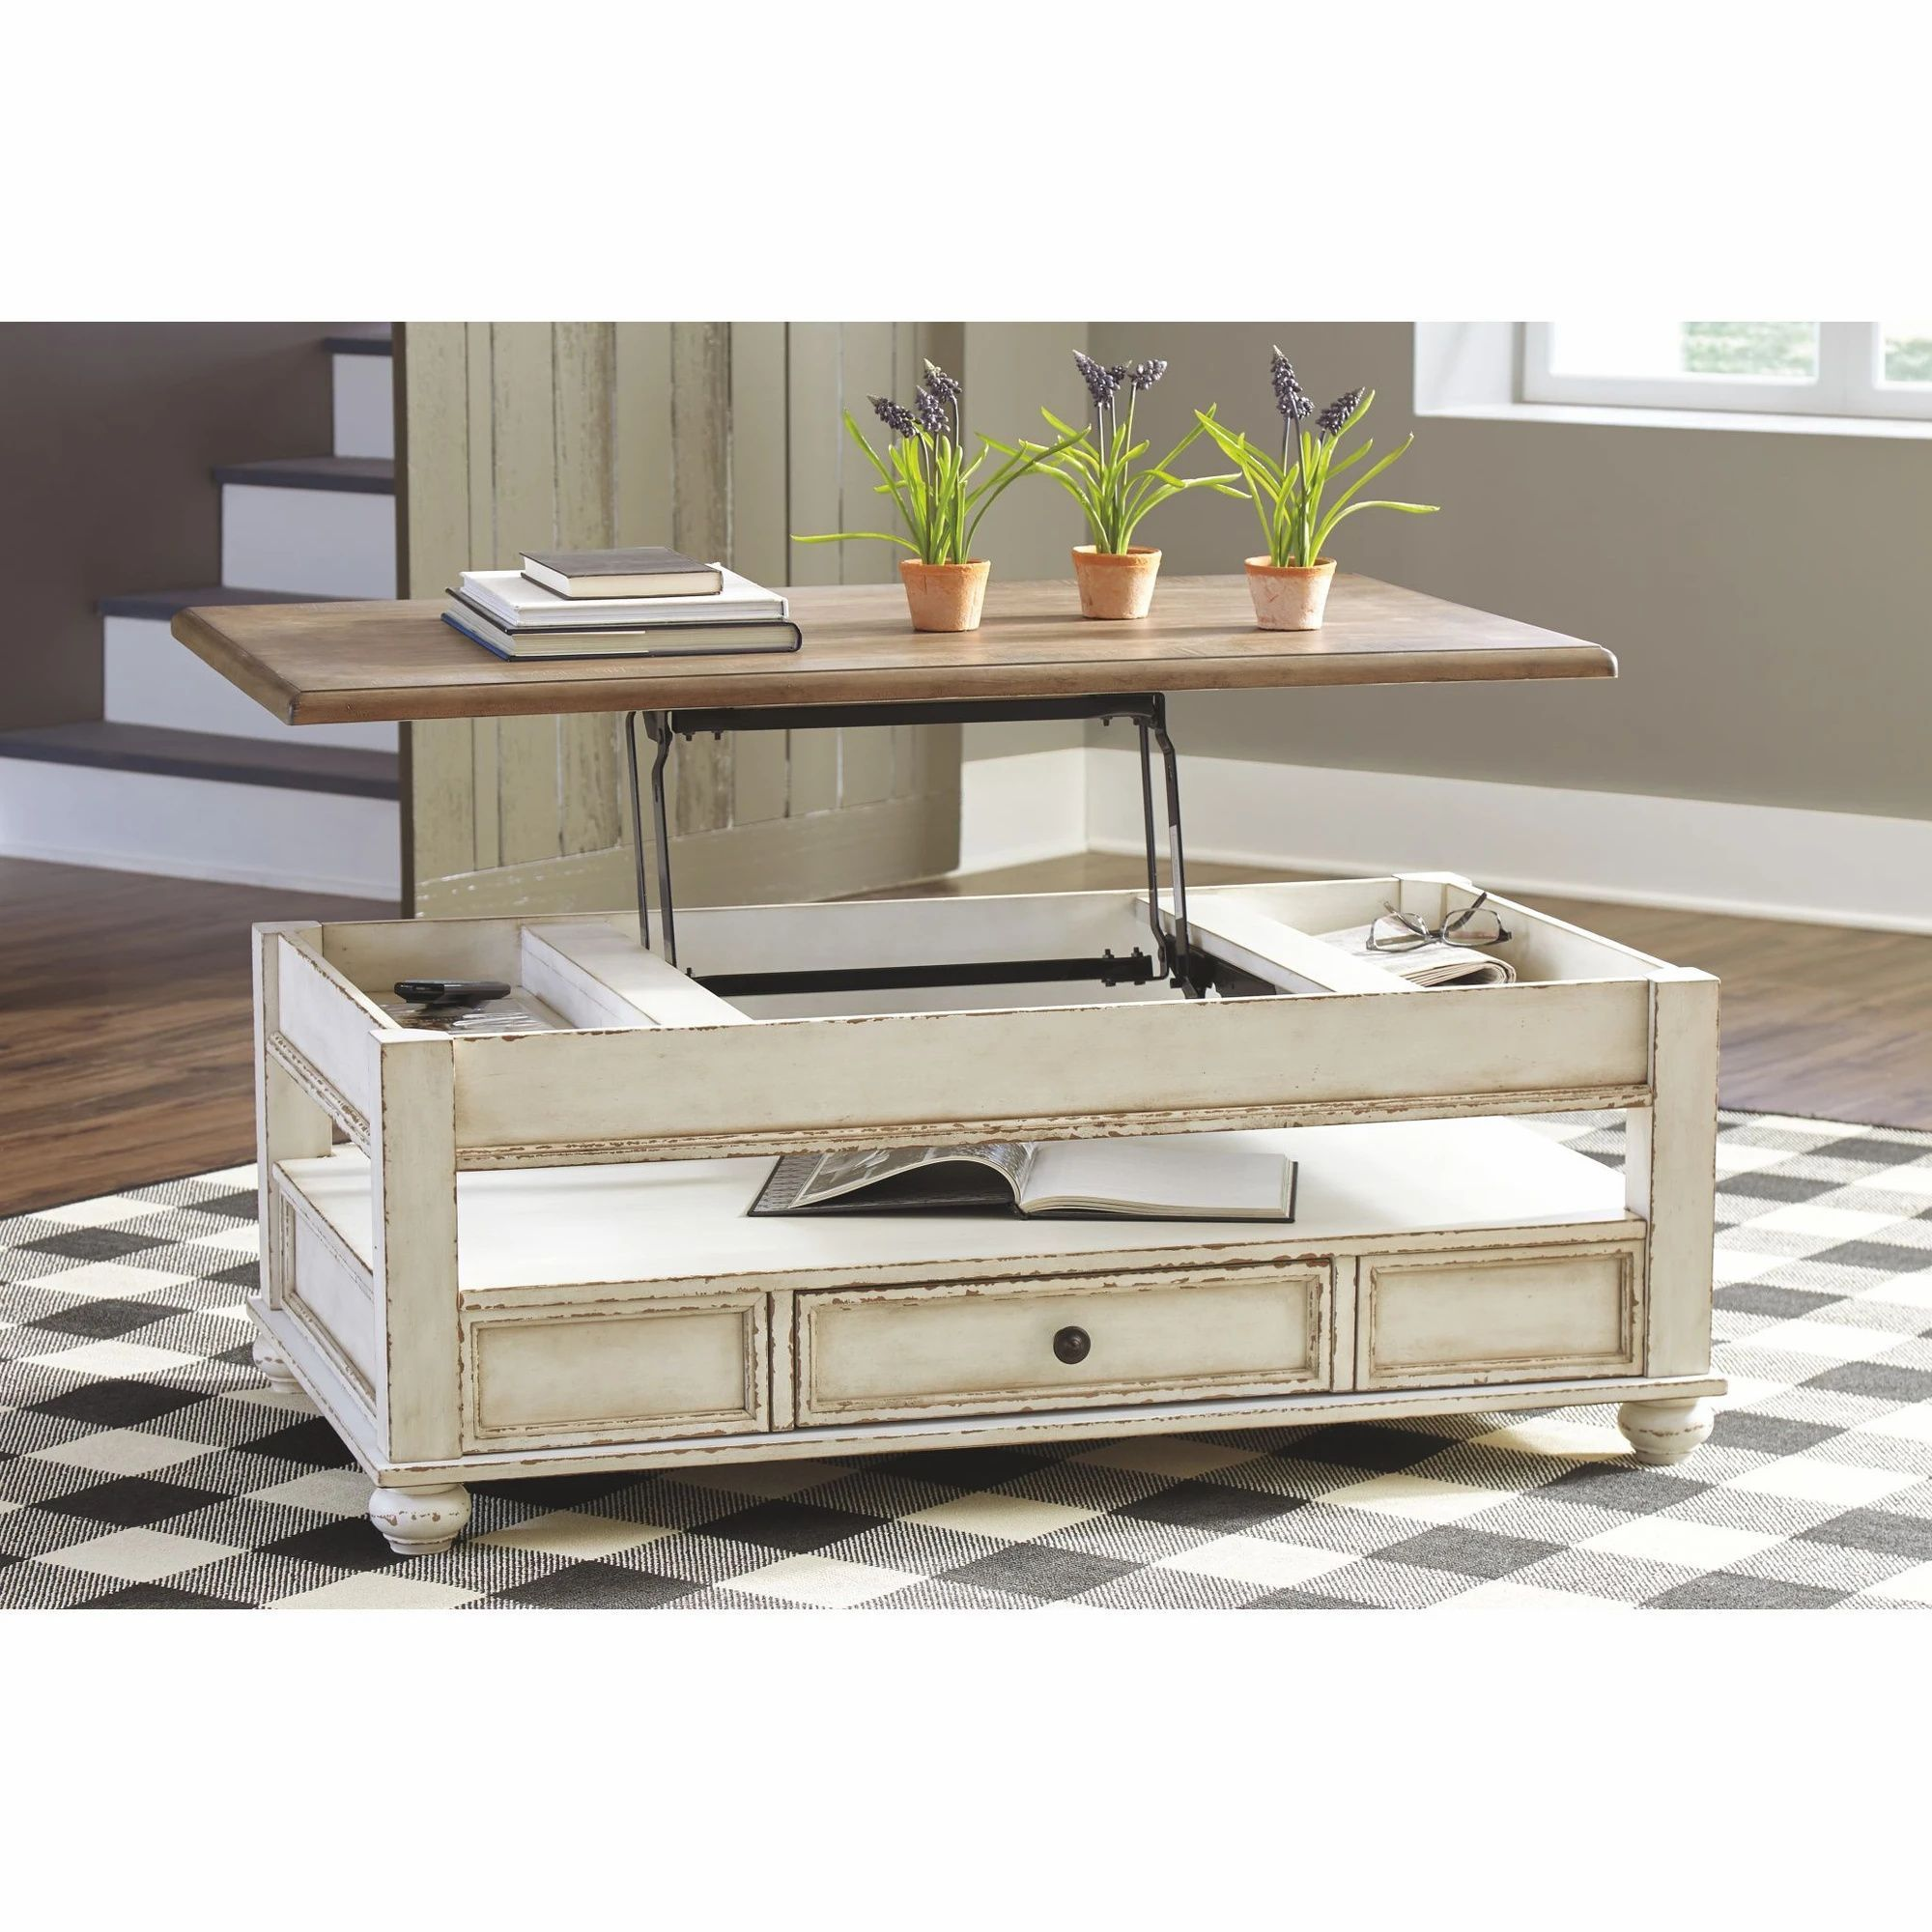 Allison Coffee Table White Brown In 2021 Coffee Table Coffee Table White Coffee Table With Storage [ 2000 x 2000 Pixel ]